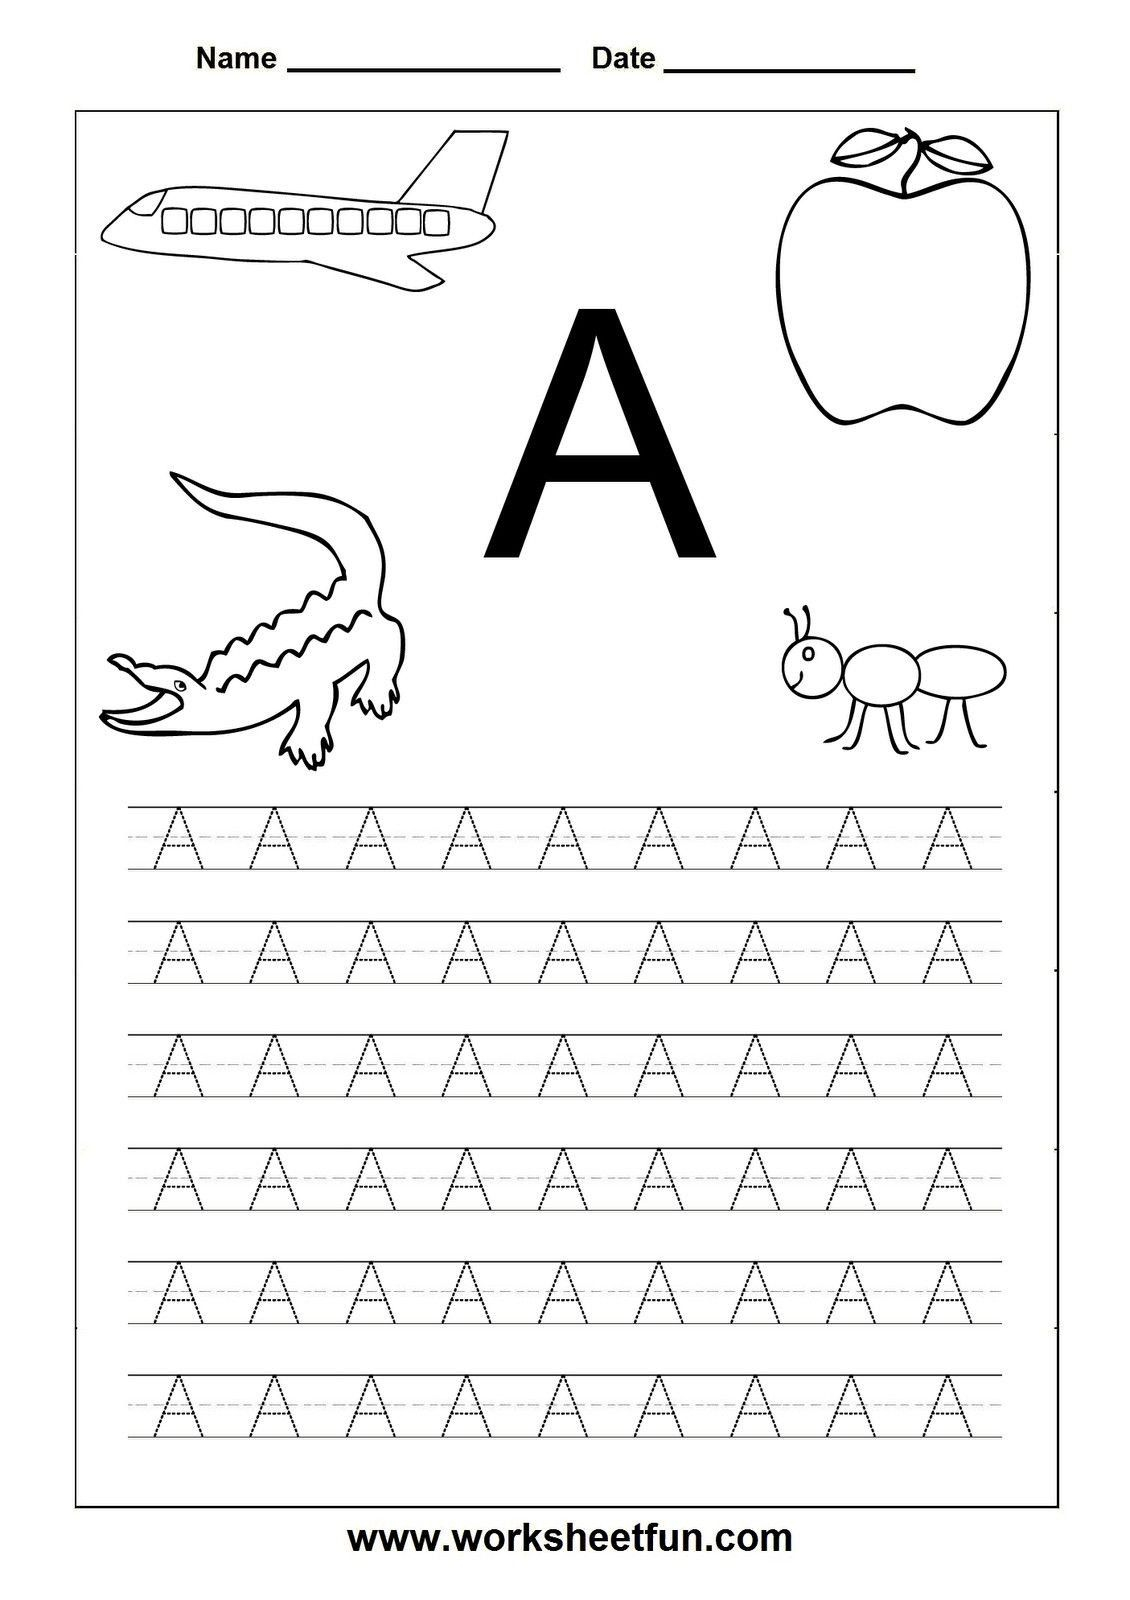 2 Abc Worksheet Free Game Free Printable Alphabet Tracers In regarding Alphabet Worksheets For Year 2